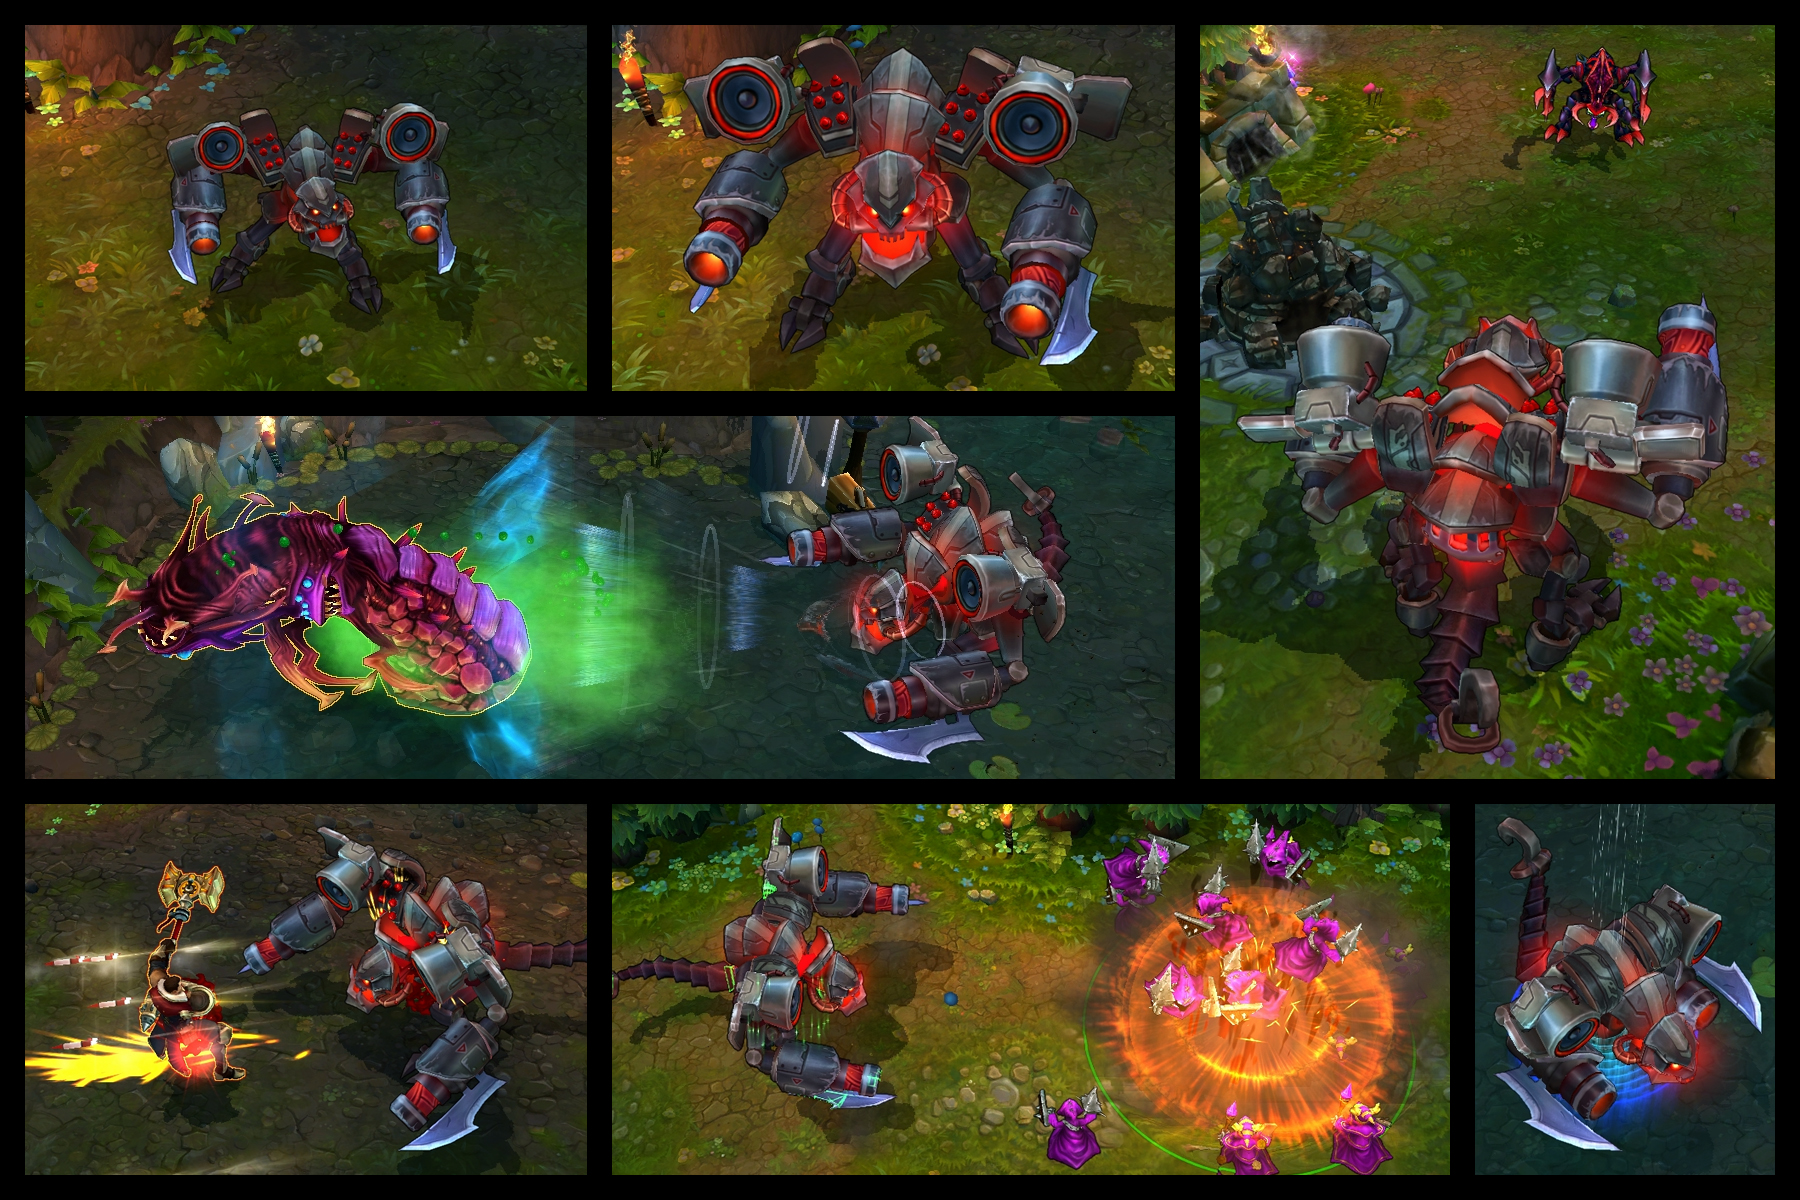 Battlecast Prime ChoGath is available now at the Legendary price of 1800x1200